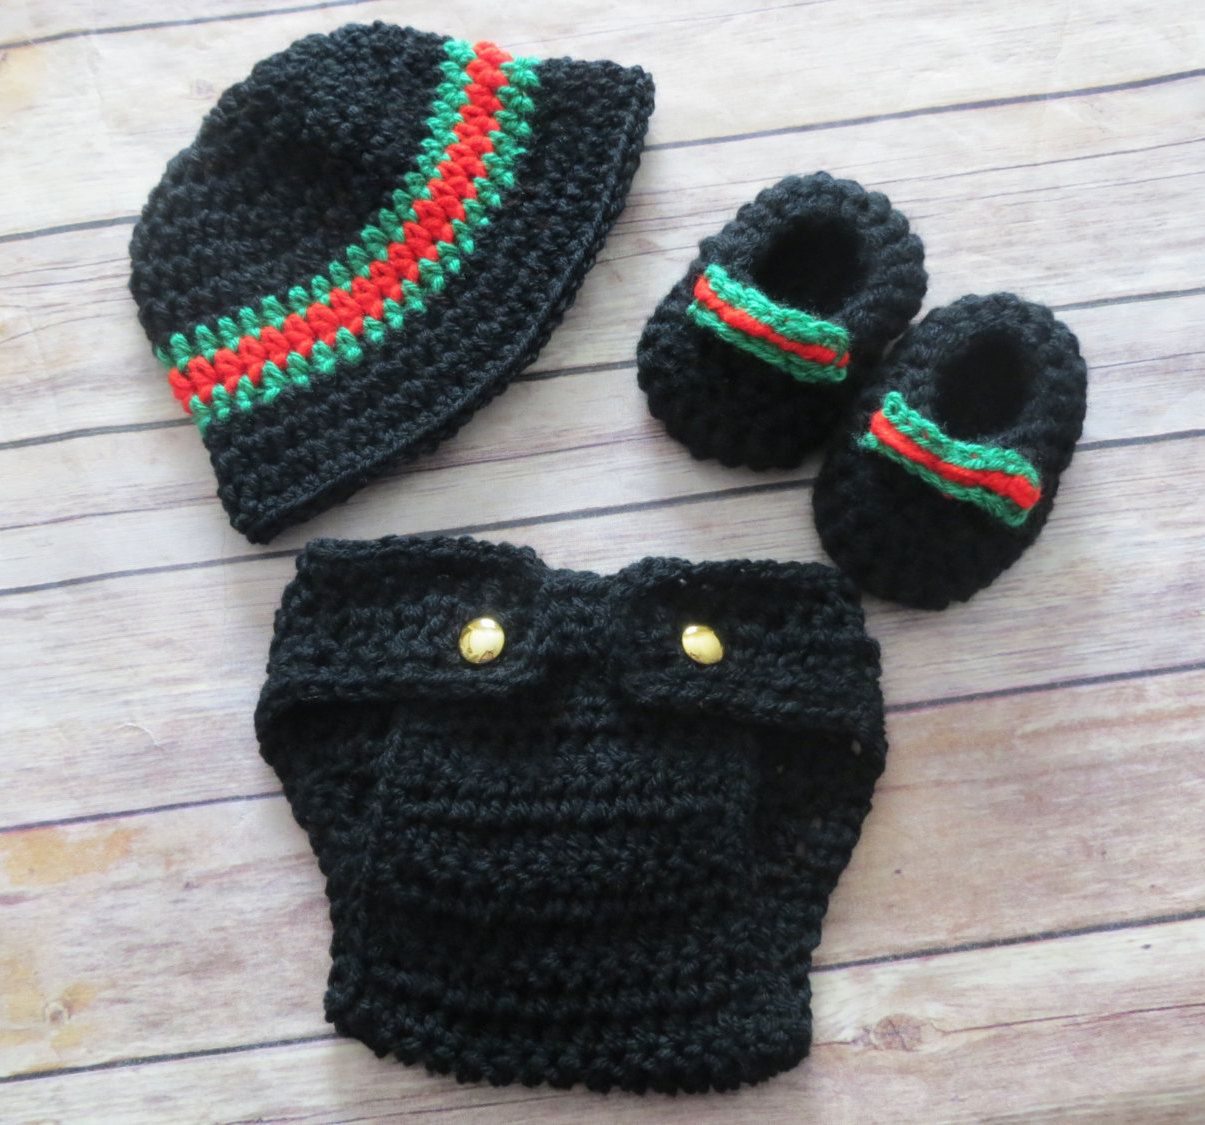 d94e7b8ff Wouldn't your baby boy look super cute in this getup? Gucci inspired hat,  diaper cover and booties for photo props.